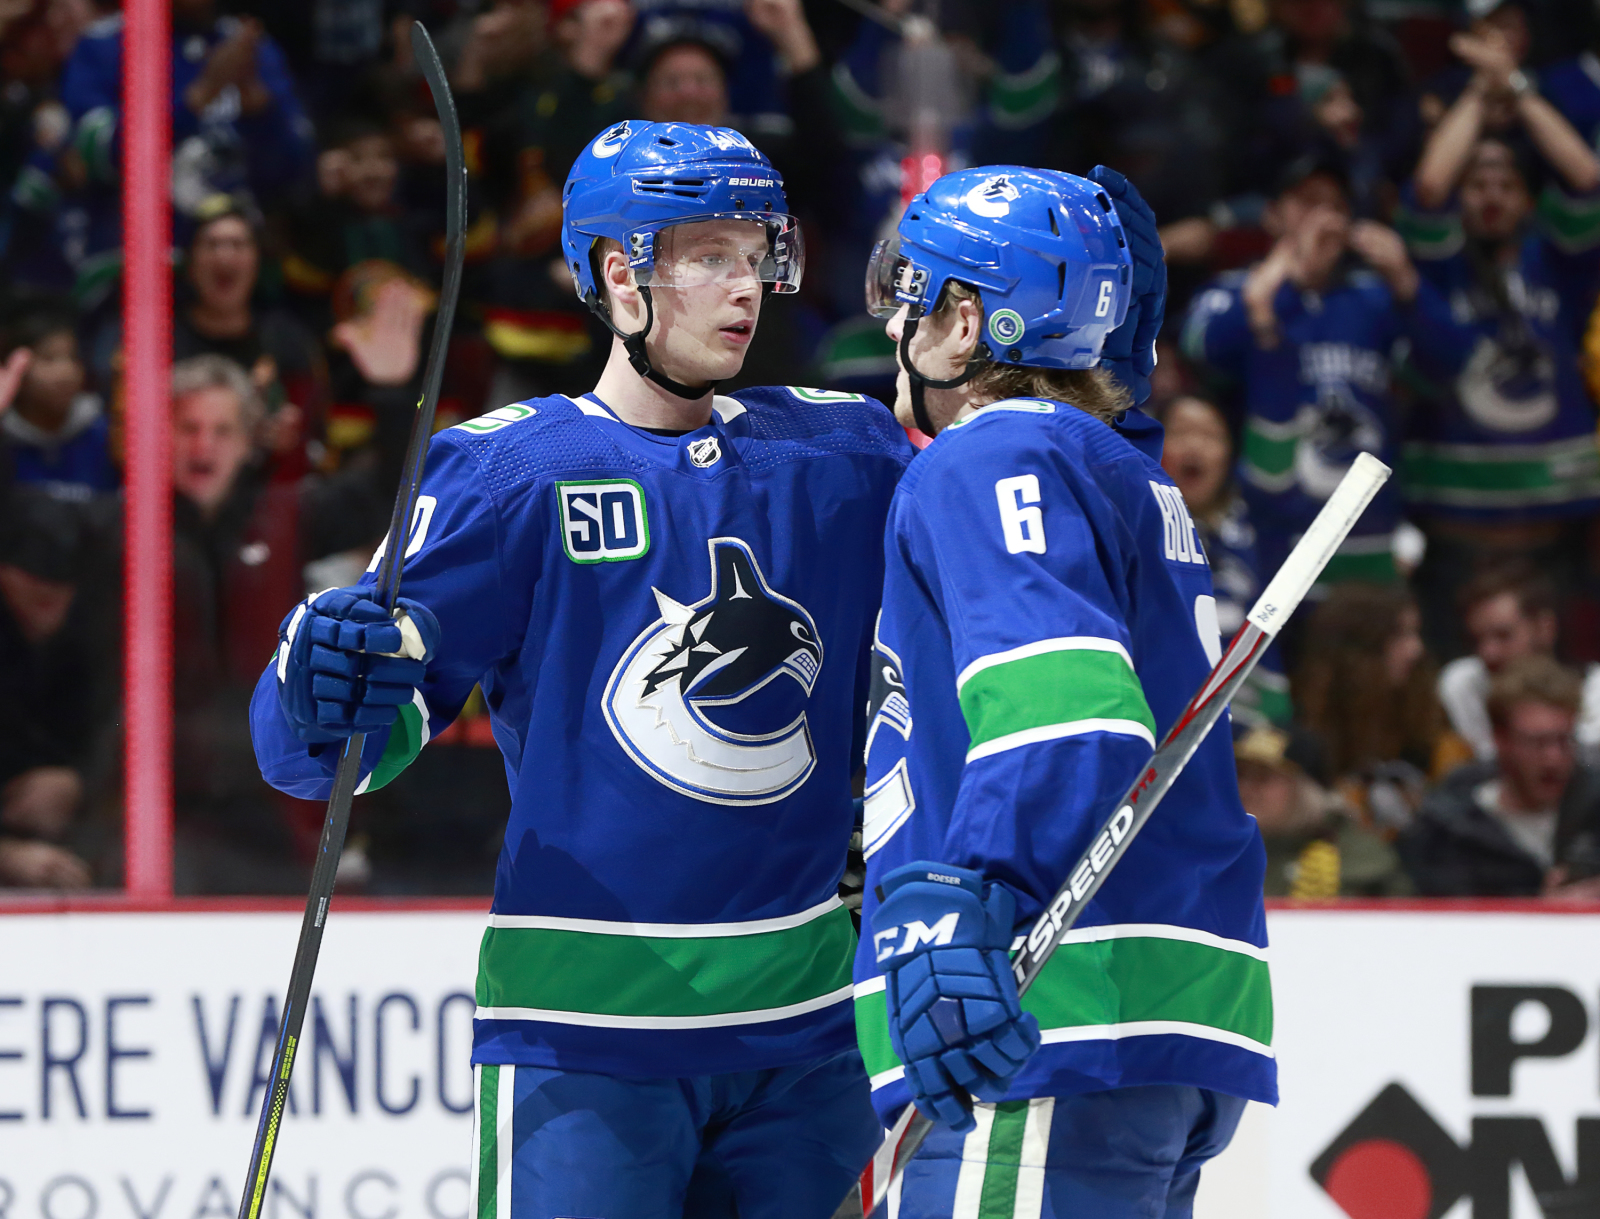 Canucks: Ranking Elias Pettersson among NHL's young stars